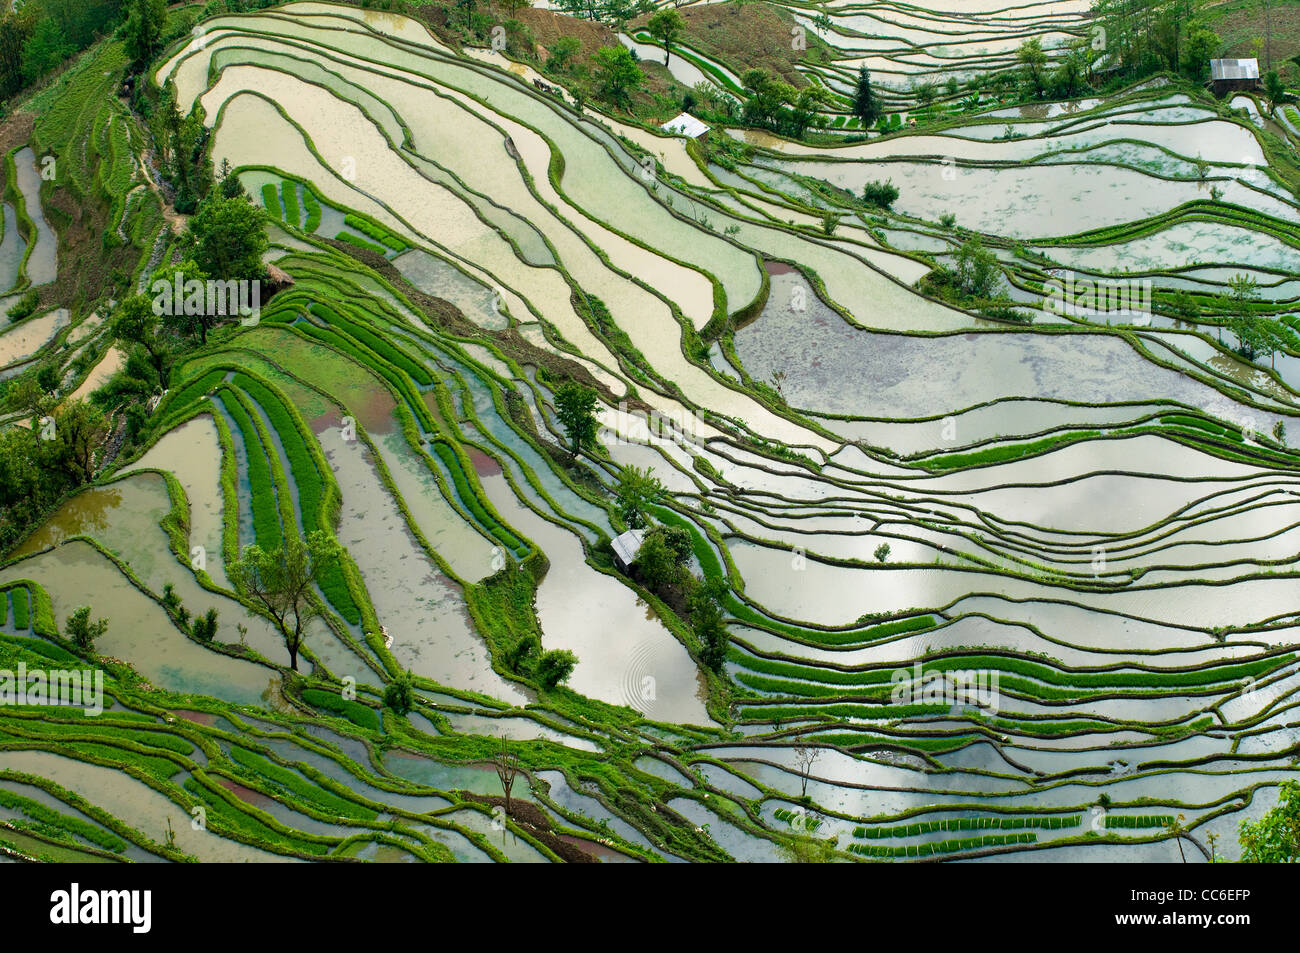 A Bird's eye view of the beautiful rice terraces in Yanyang. - Stock Image